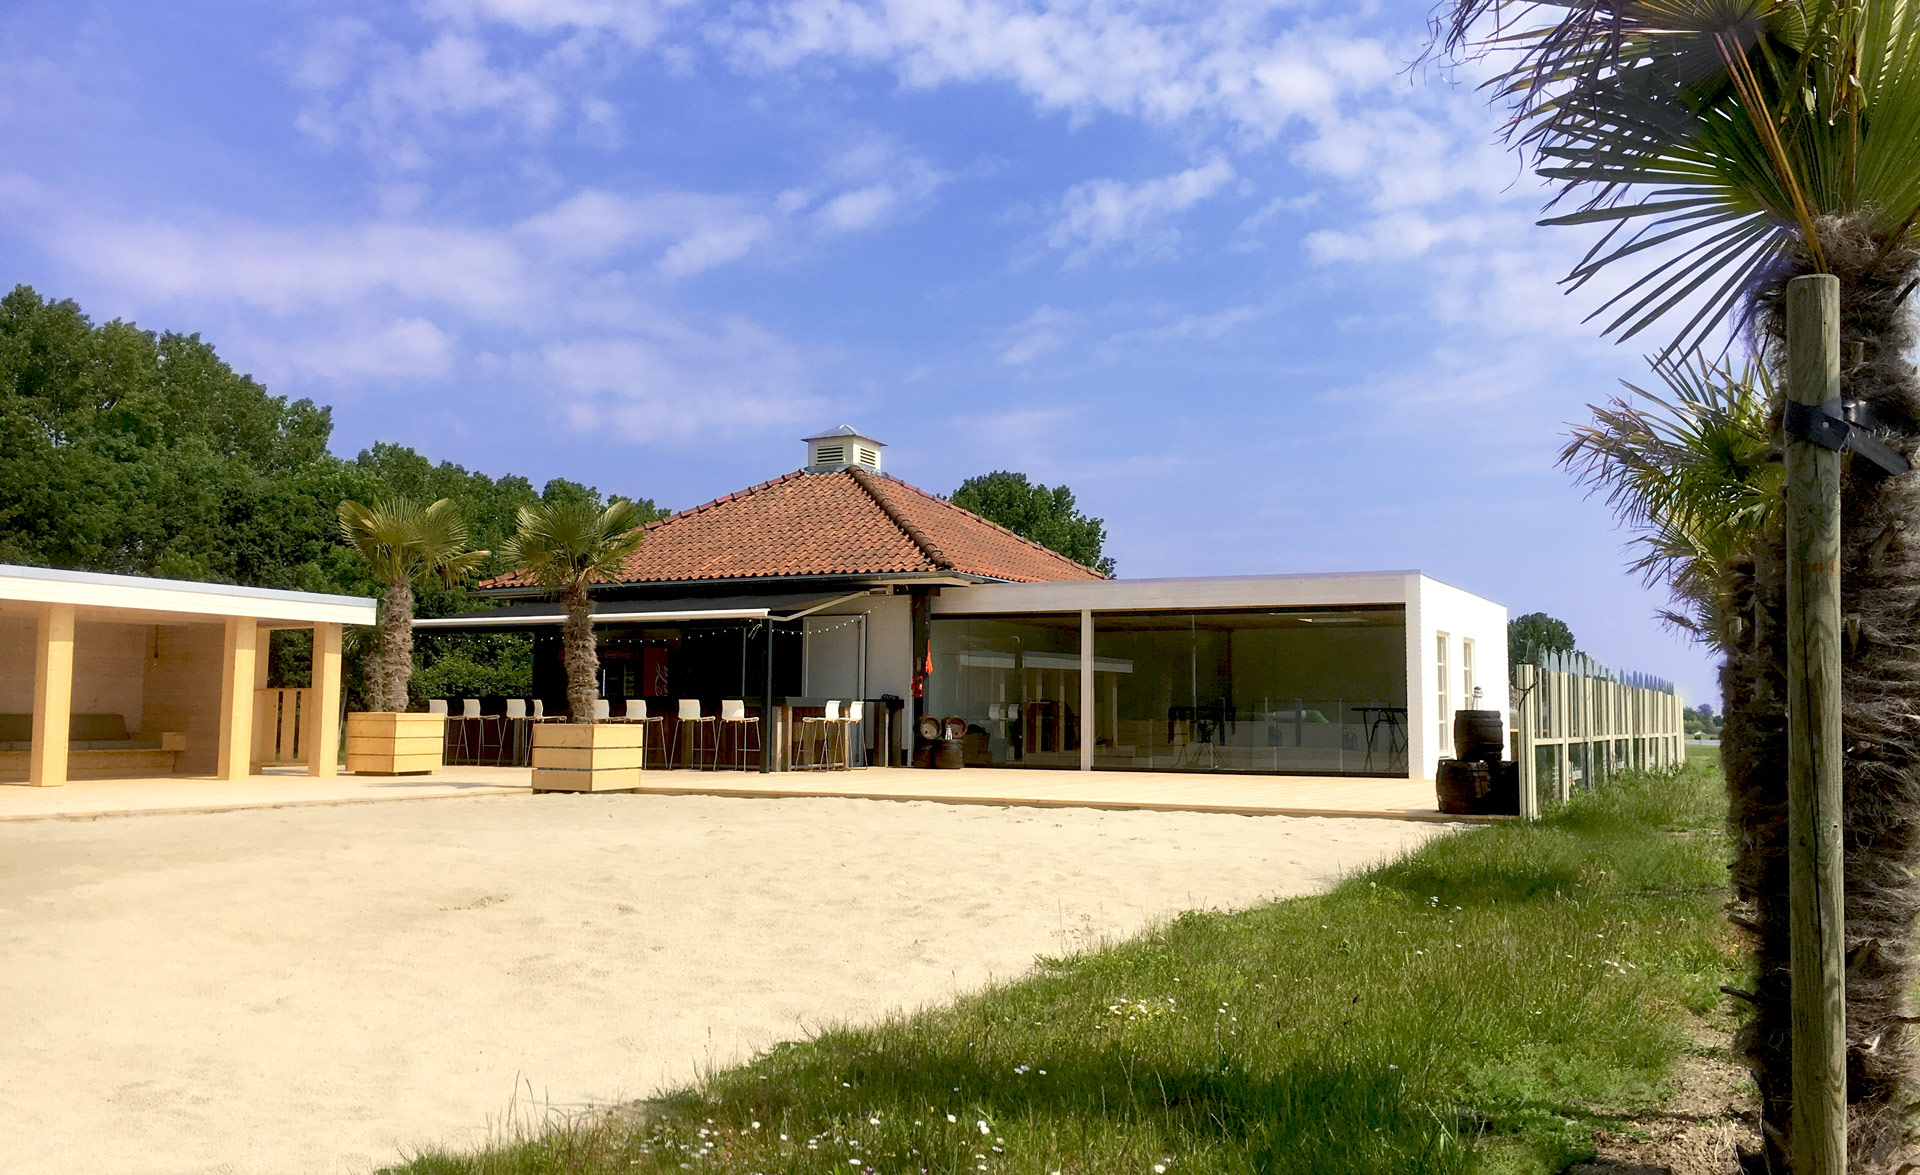 Area-X-De-Weerd-Roermond-Beachclub-Palm-Beach-4b